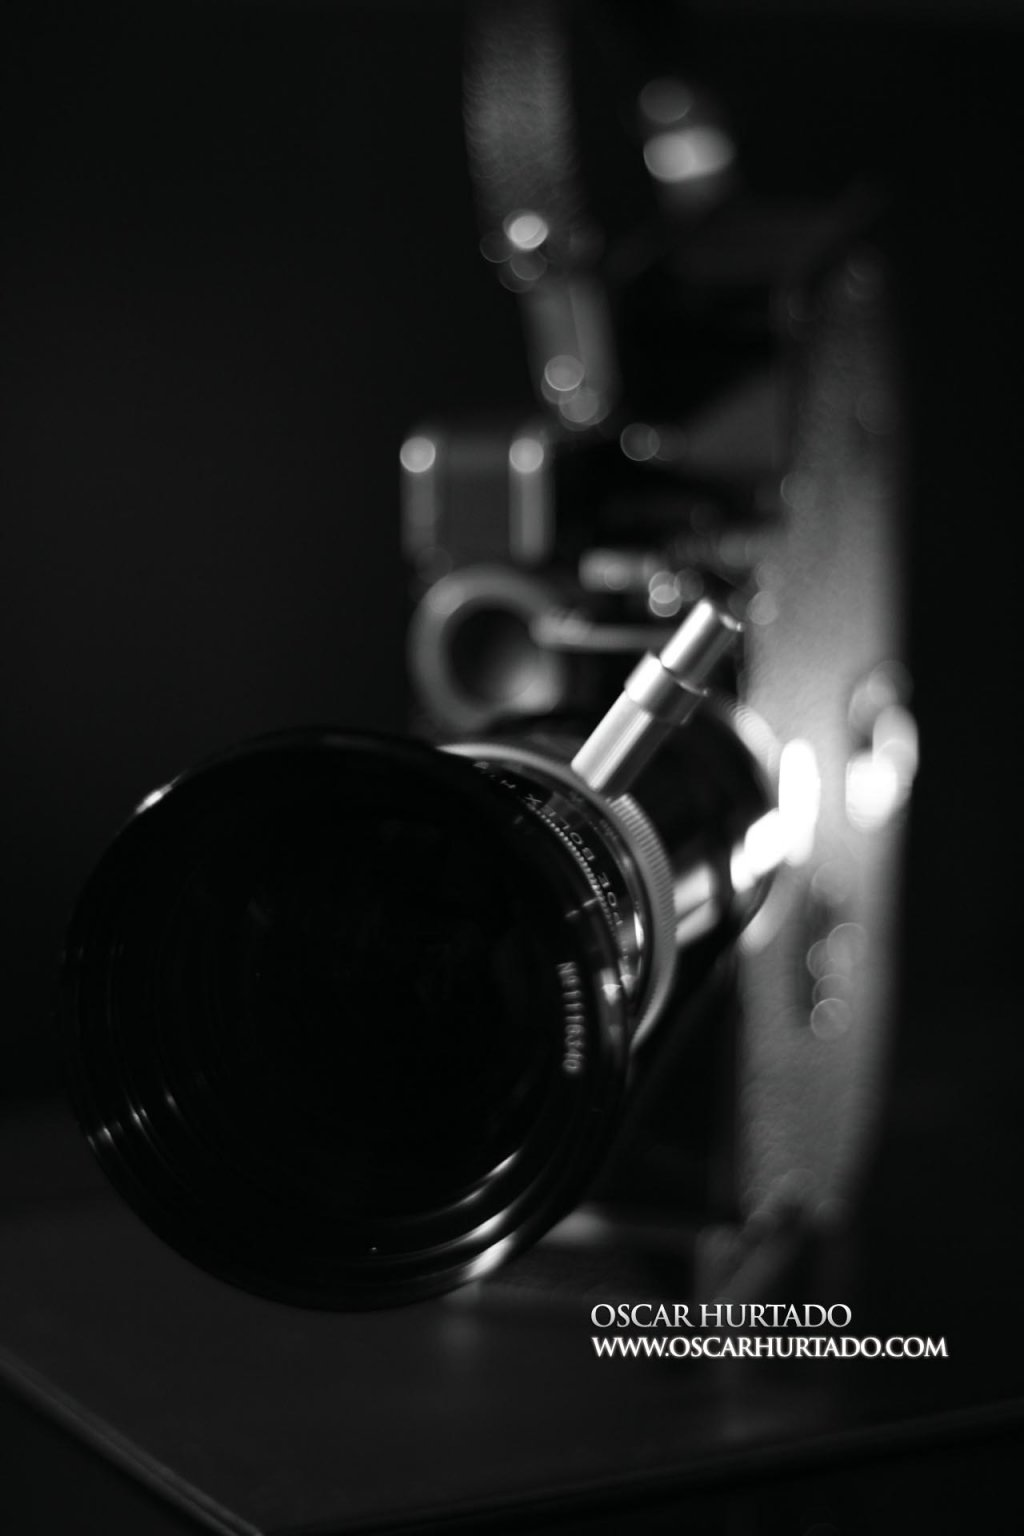 Frontal view of the Bolex Paillard Rex5 16mm camera